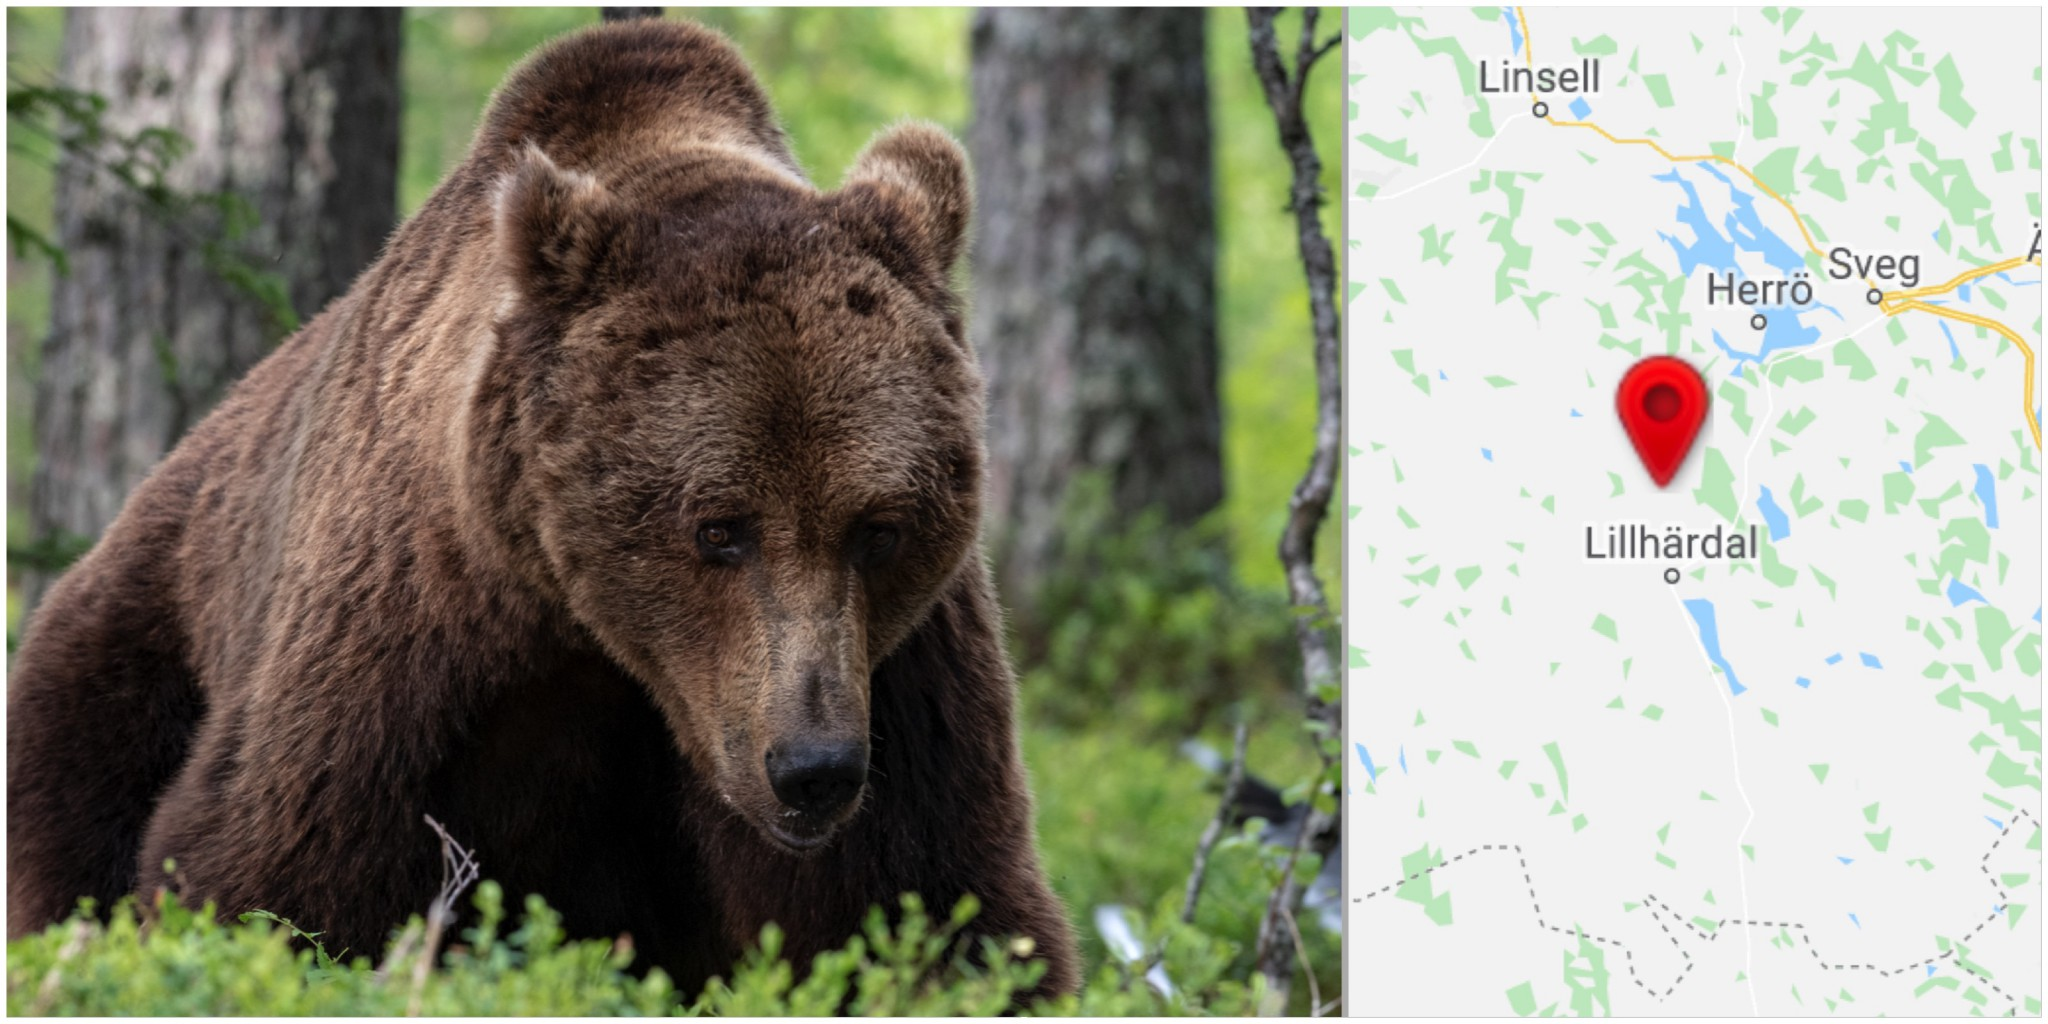 It was in connection with the hunting in Lillhärdal because the hunter had been wounded by a bear.